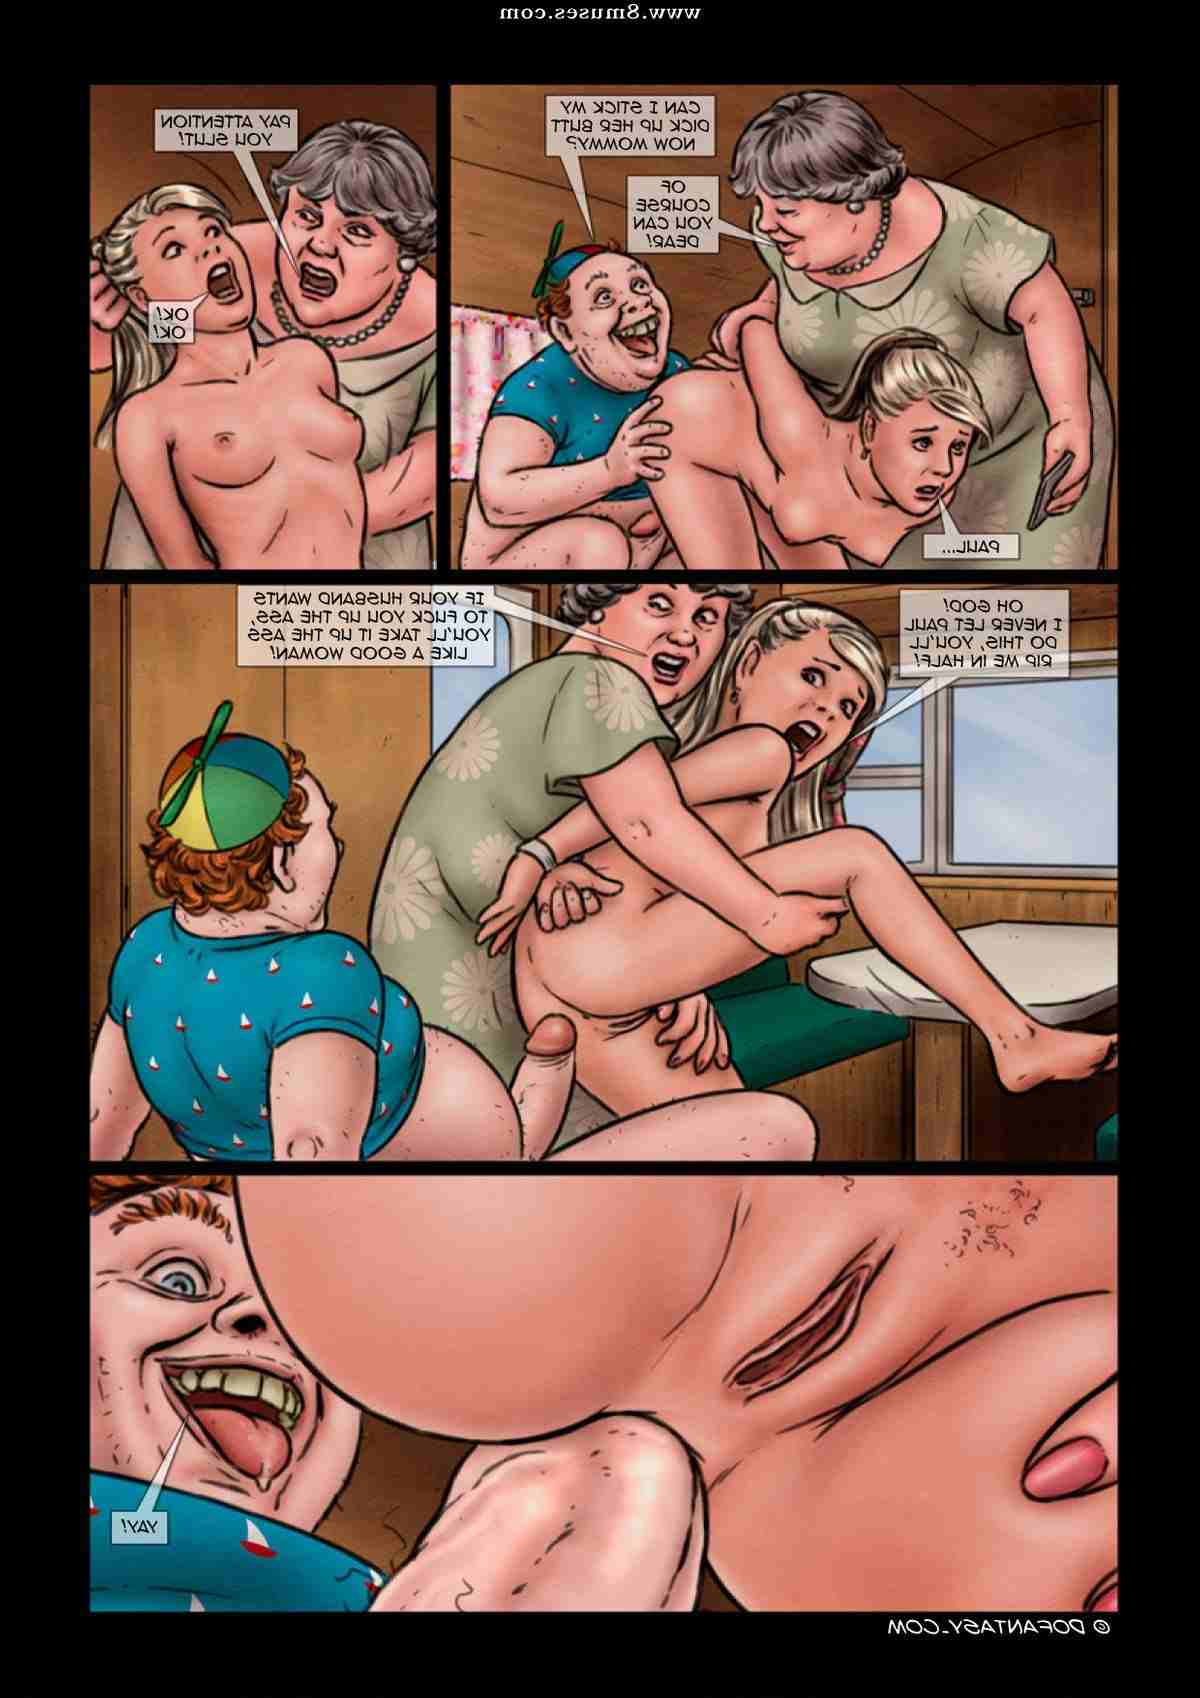 Fansadox-Comics/401-500/Fansadox-459-Mamas-Boy-3-Slasher Fansadox_459_-_Mamas_Boy_3_-_Slasher__8muses_-_Sex_and_Porn_Comics_32.jpg